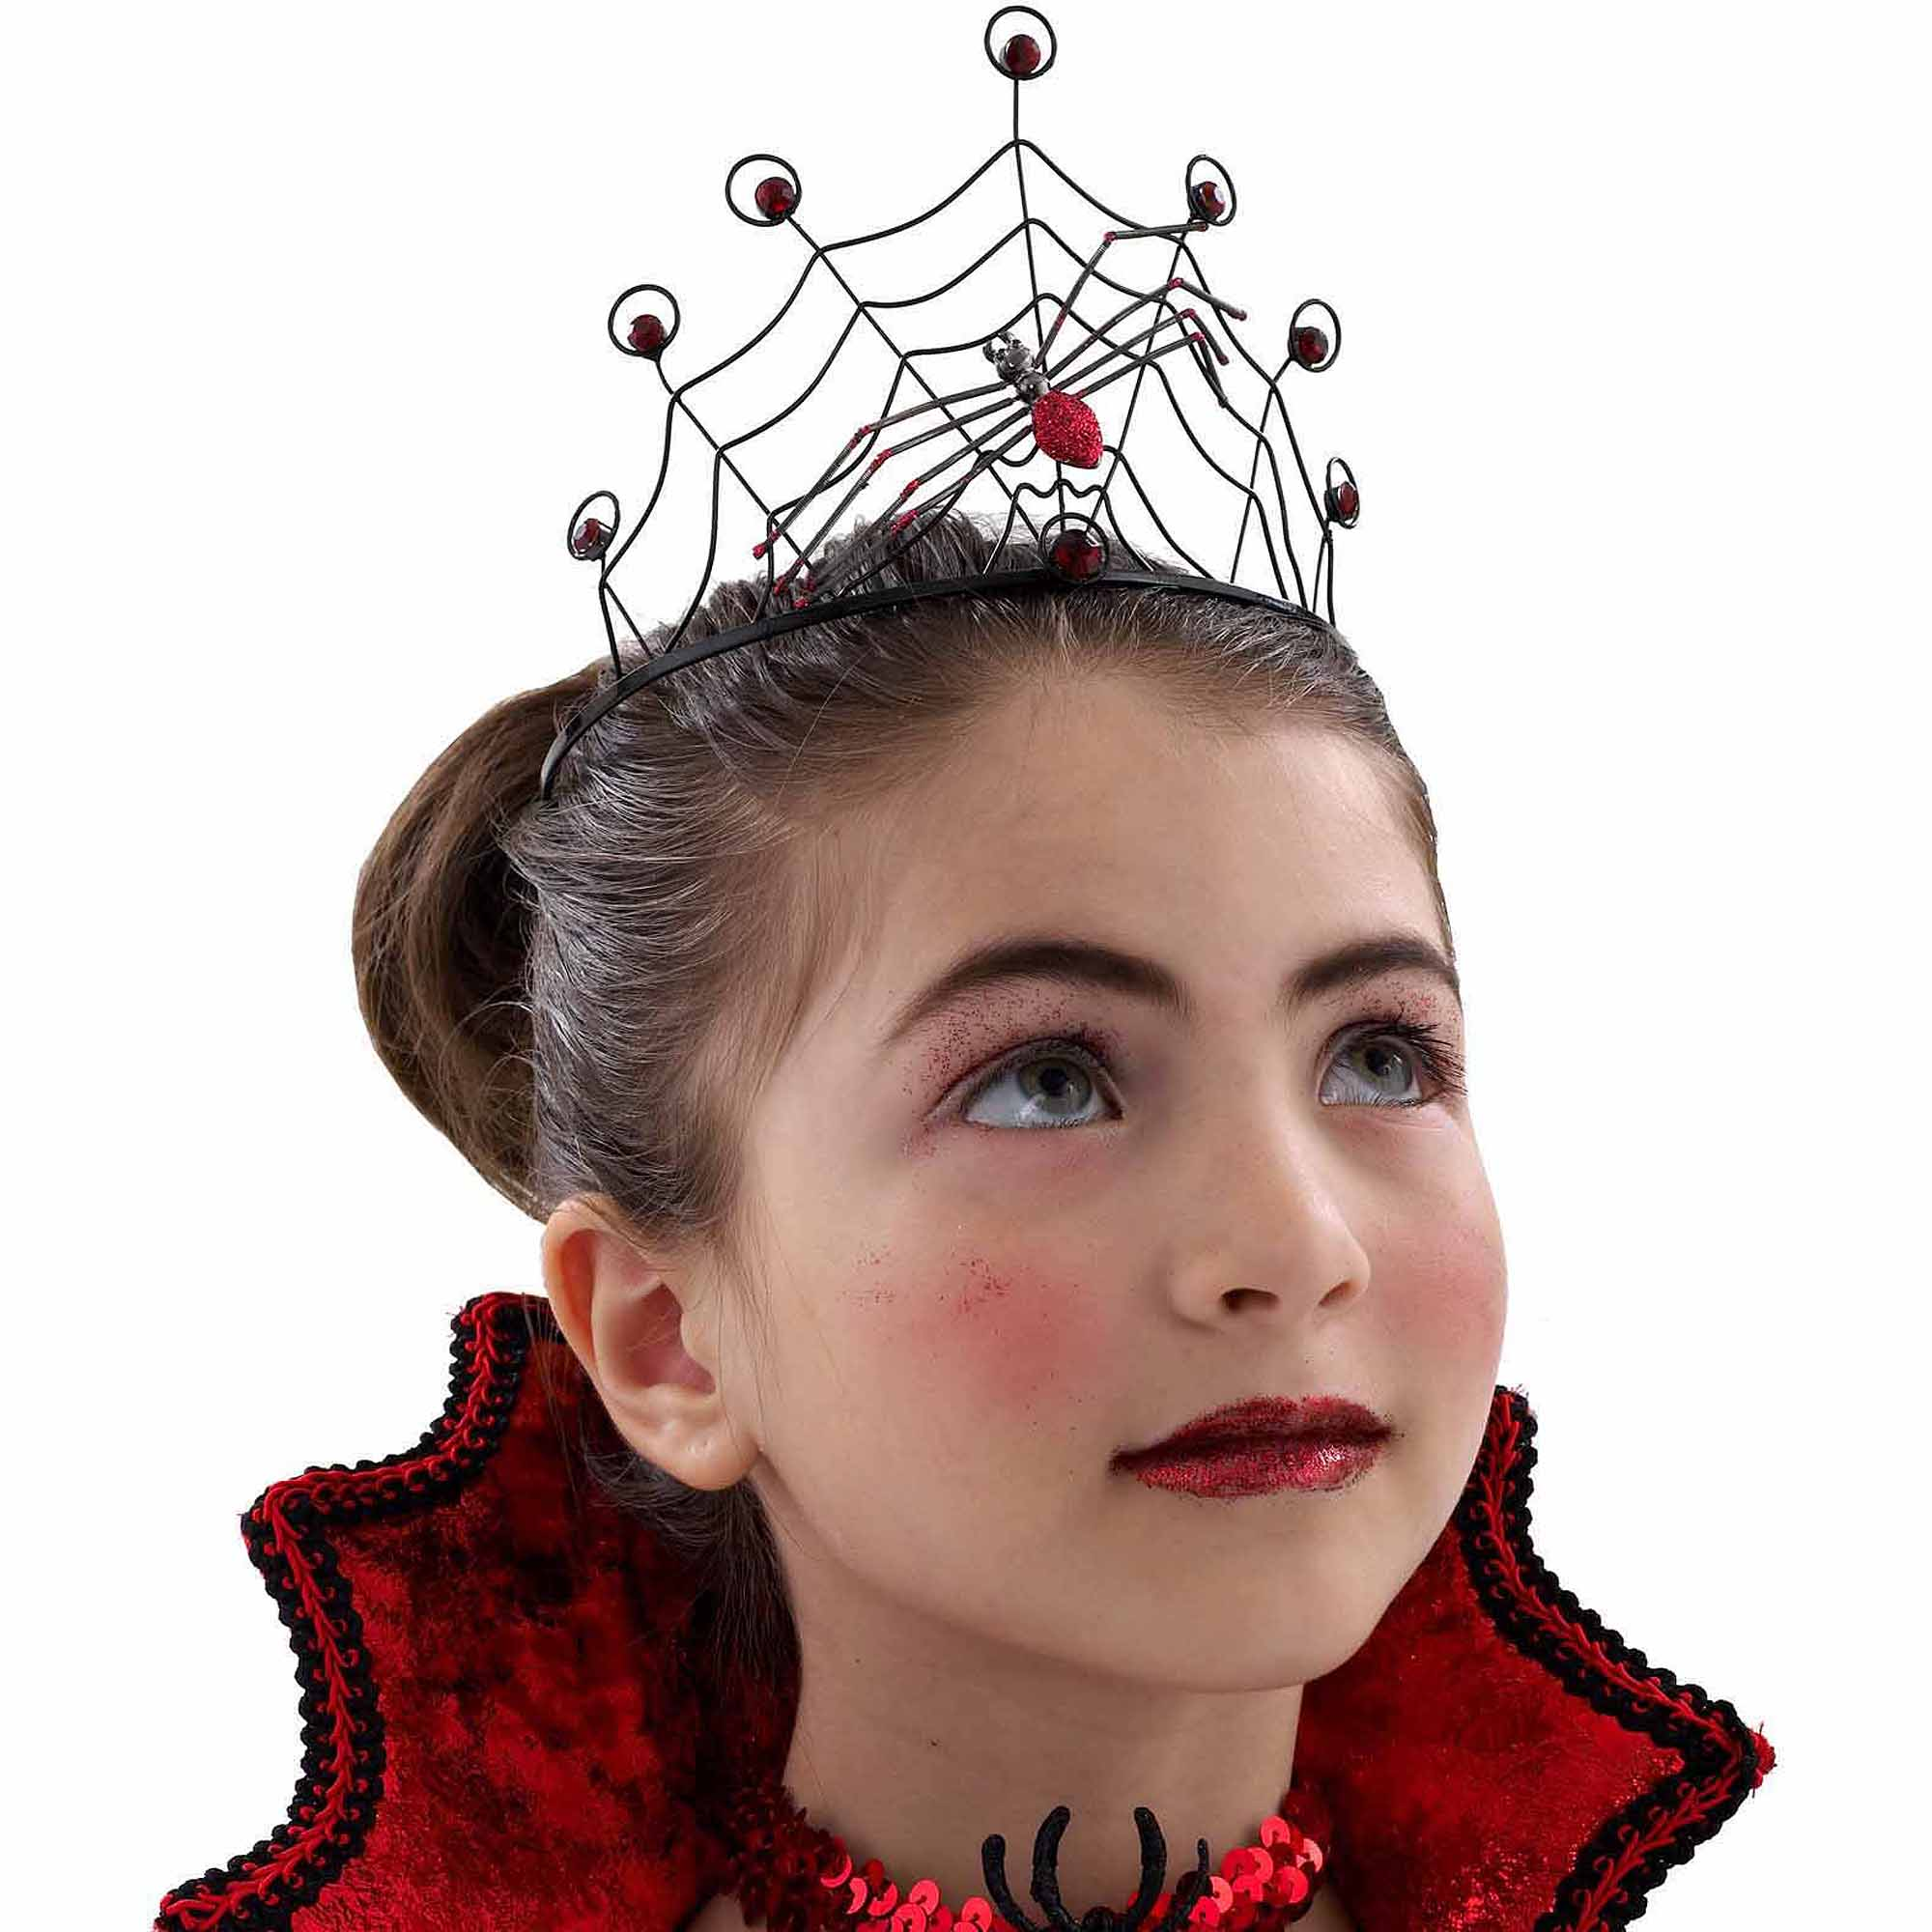 Red Spider Child Crown Adult Halloween Costume Accessory